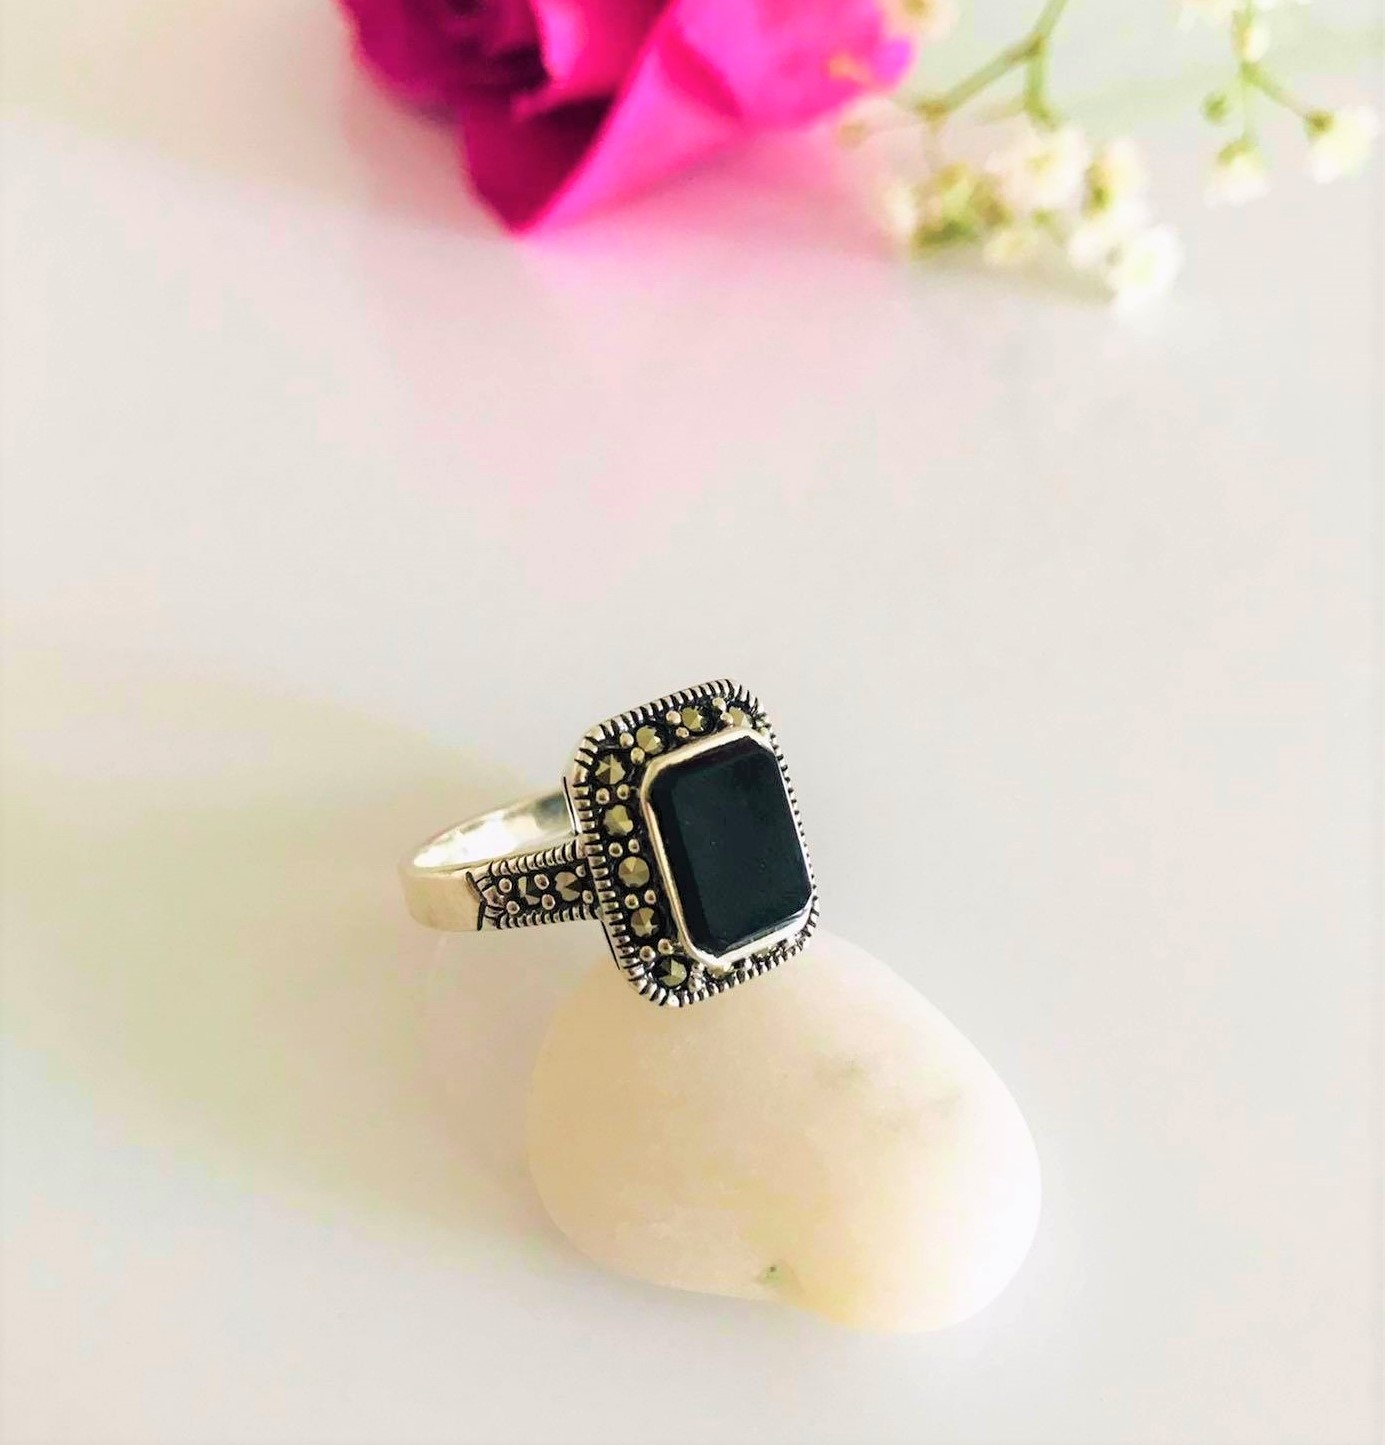 Black Onyx with Marcasite Set in Sterling Silver Ring Image